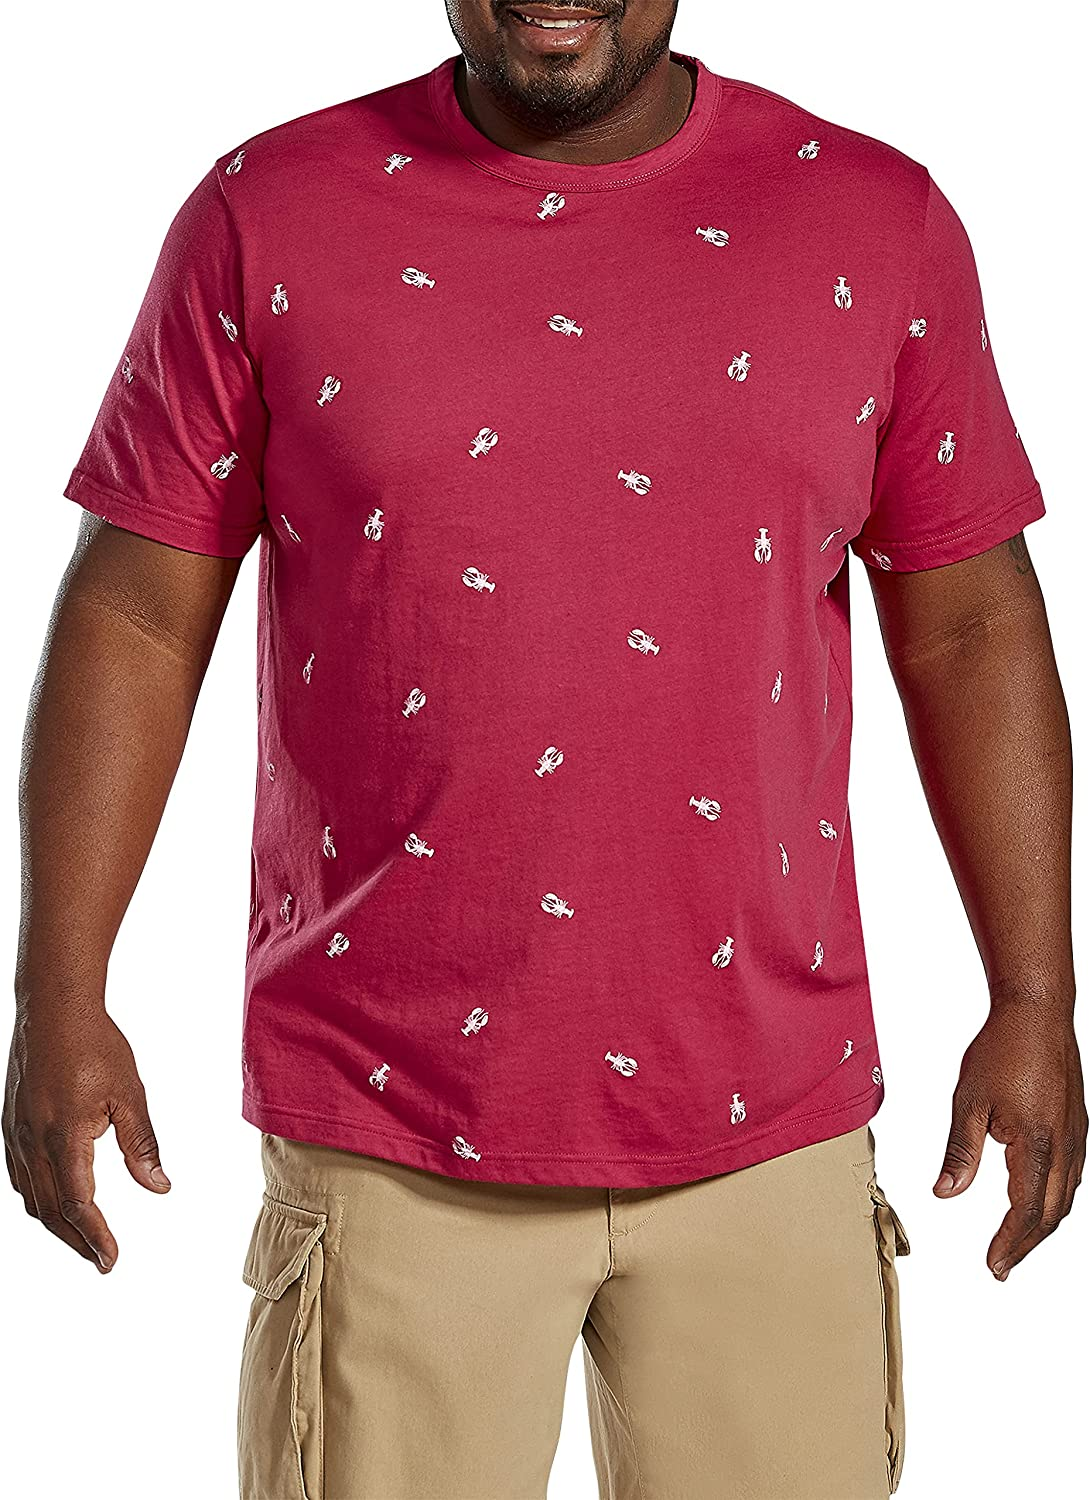 Harbor Bay by DXL Big and Tall Lobster Print Tee, Red Multi